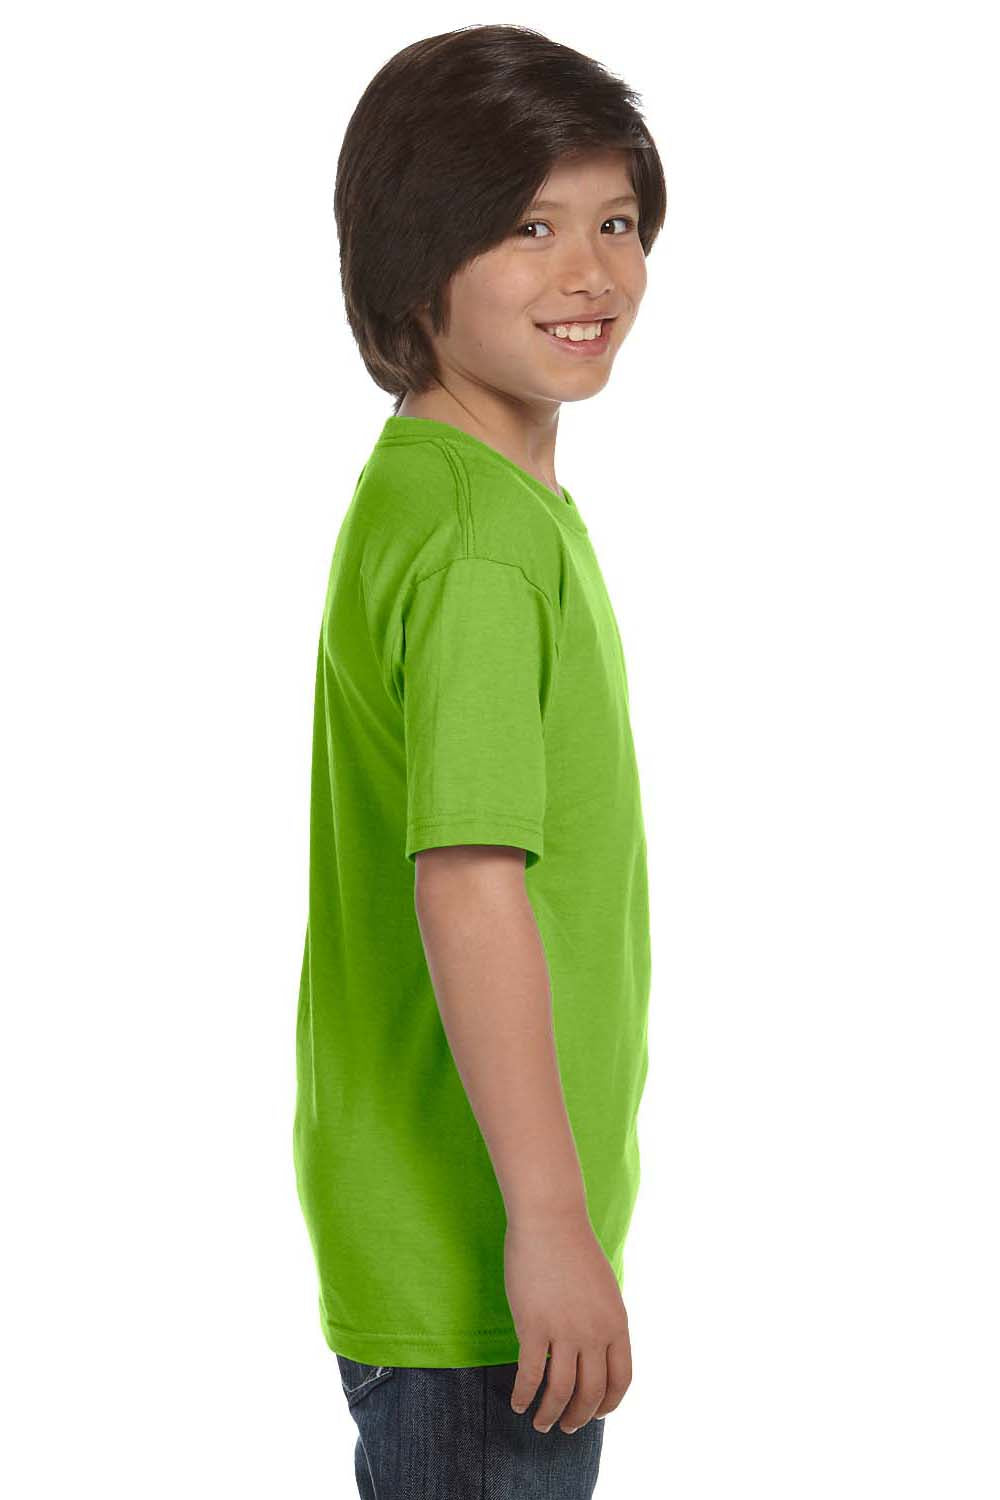 Hanes 5380 Youth Beefy-T Short Sleeve Crewneck T-Shirt Lime Green Side